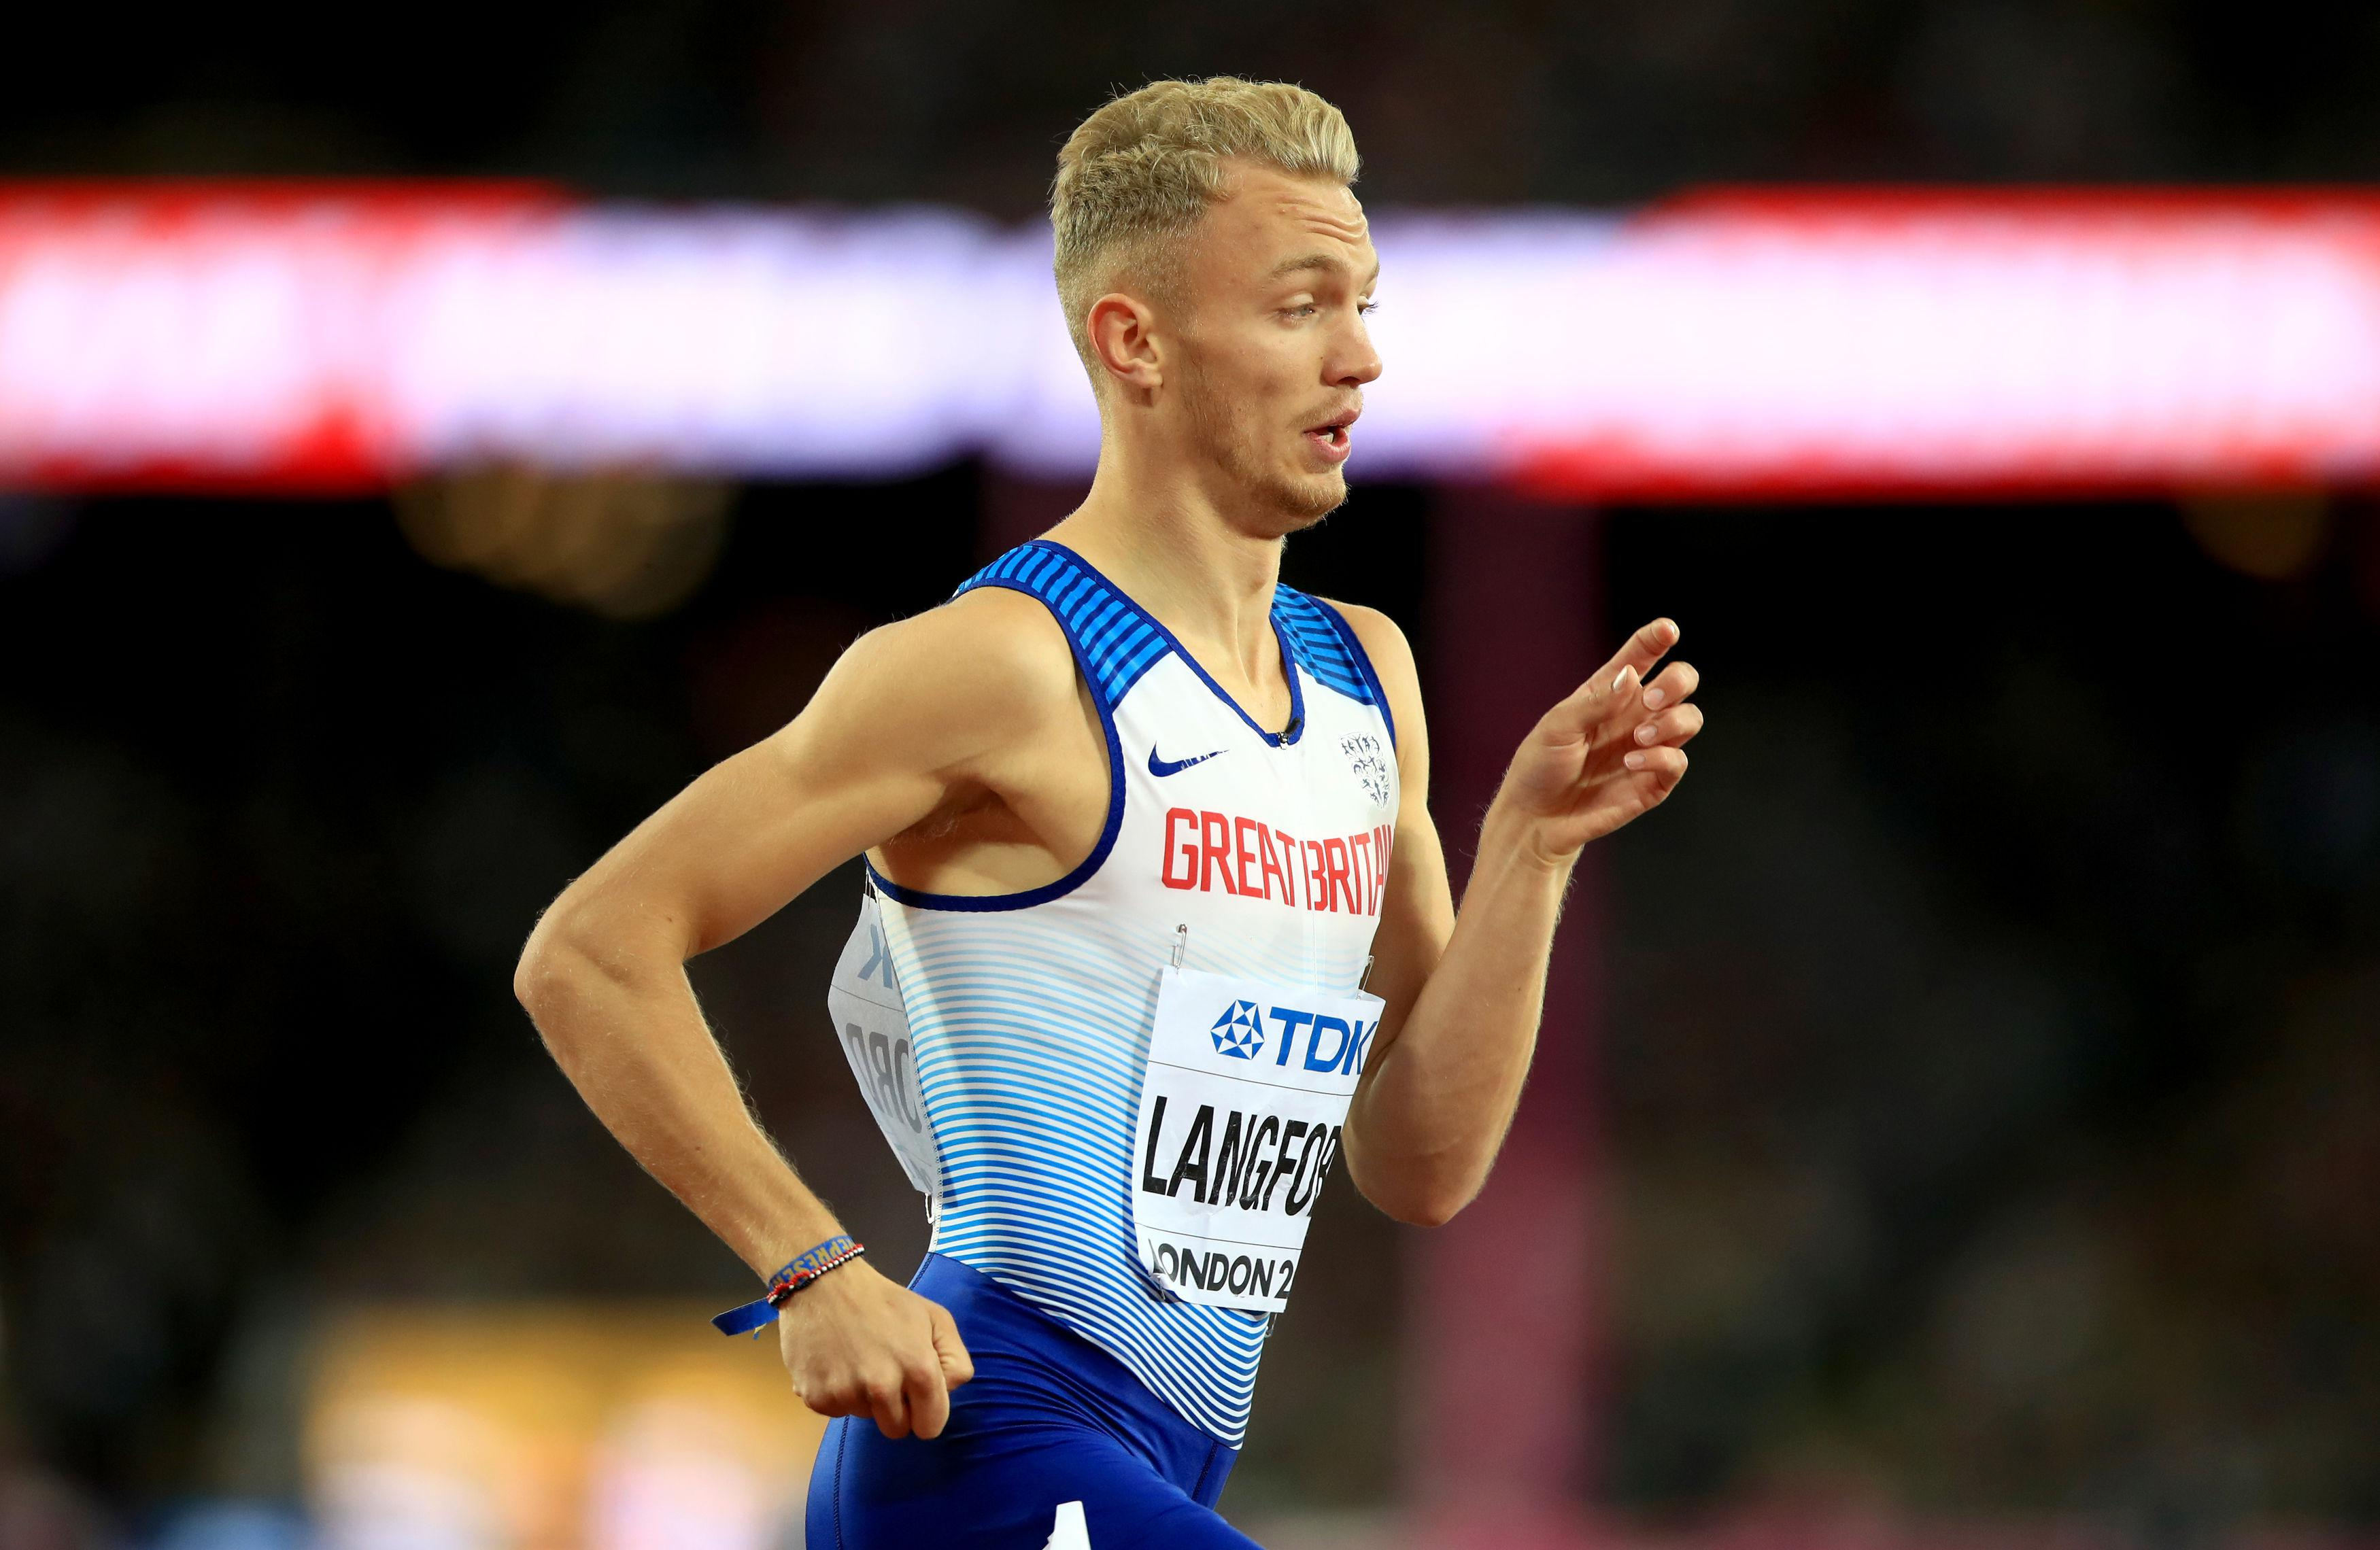 Kyle Langford scorched into the world 800 metres final with a thrilling semi-final run